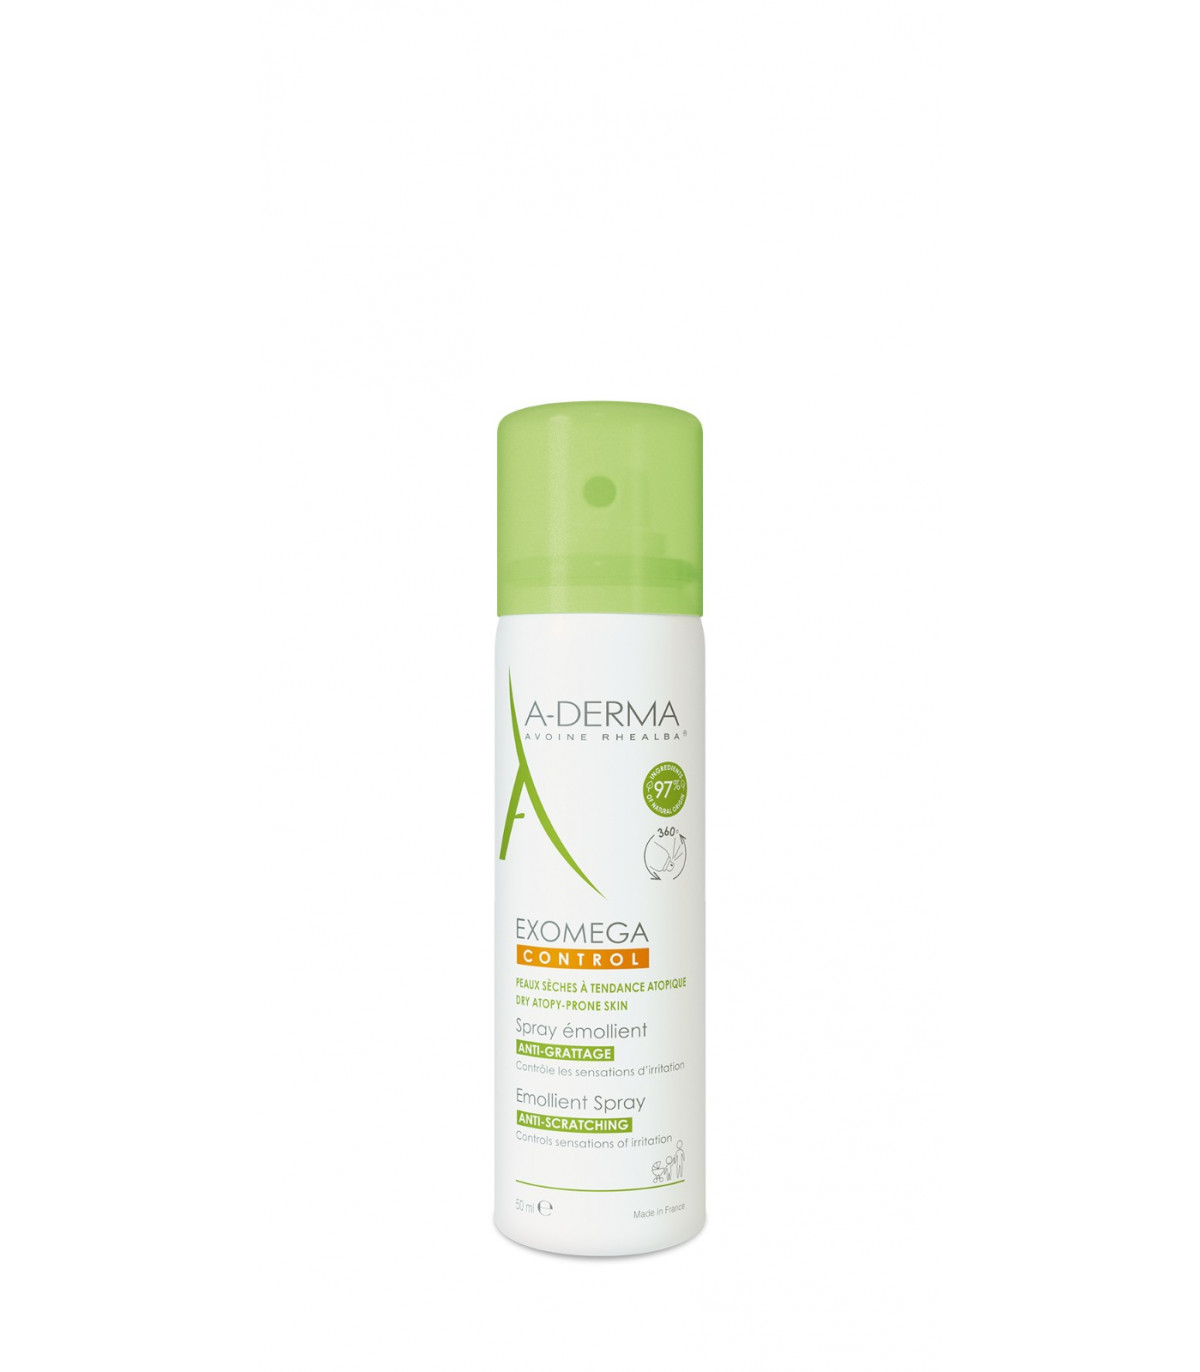 EXOMEGA CONTROL SPRAY EMOLLIENTE 50 ML - Speedyfarma.it